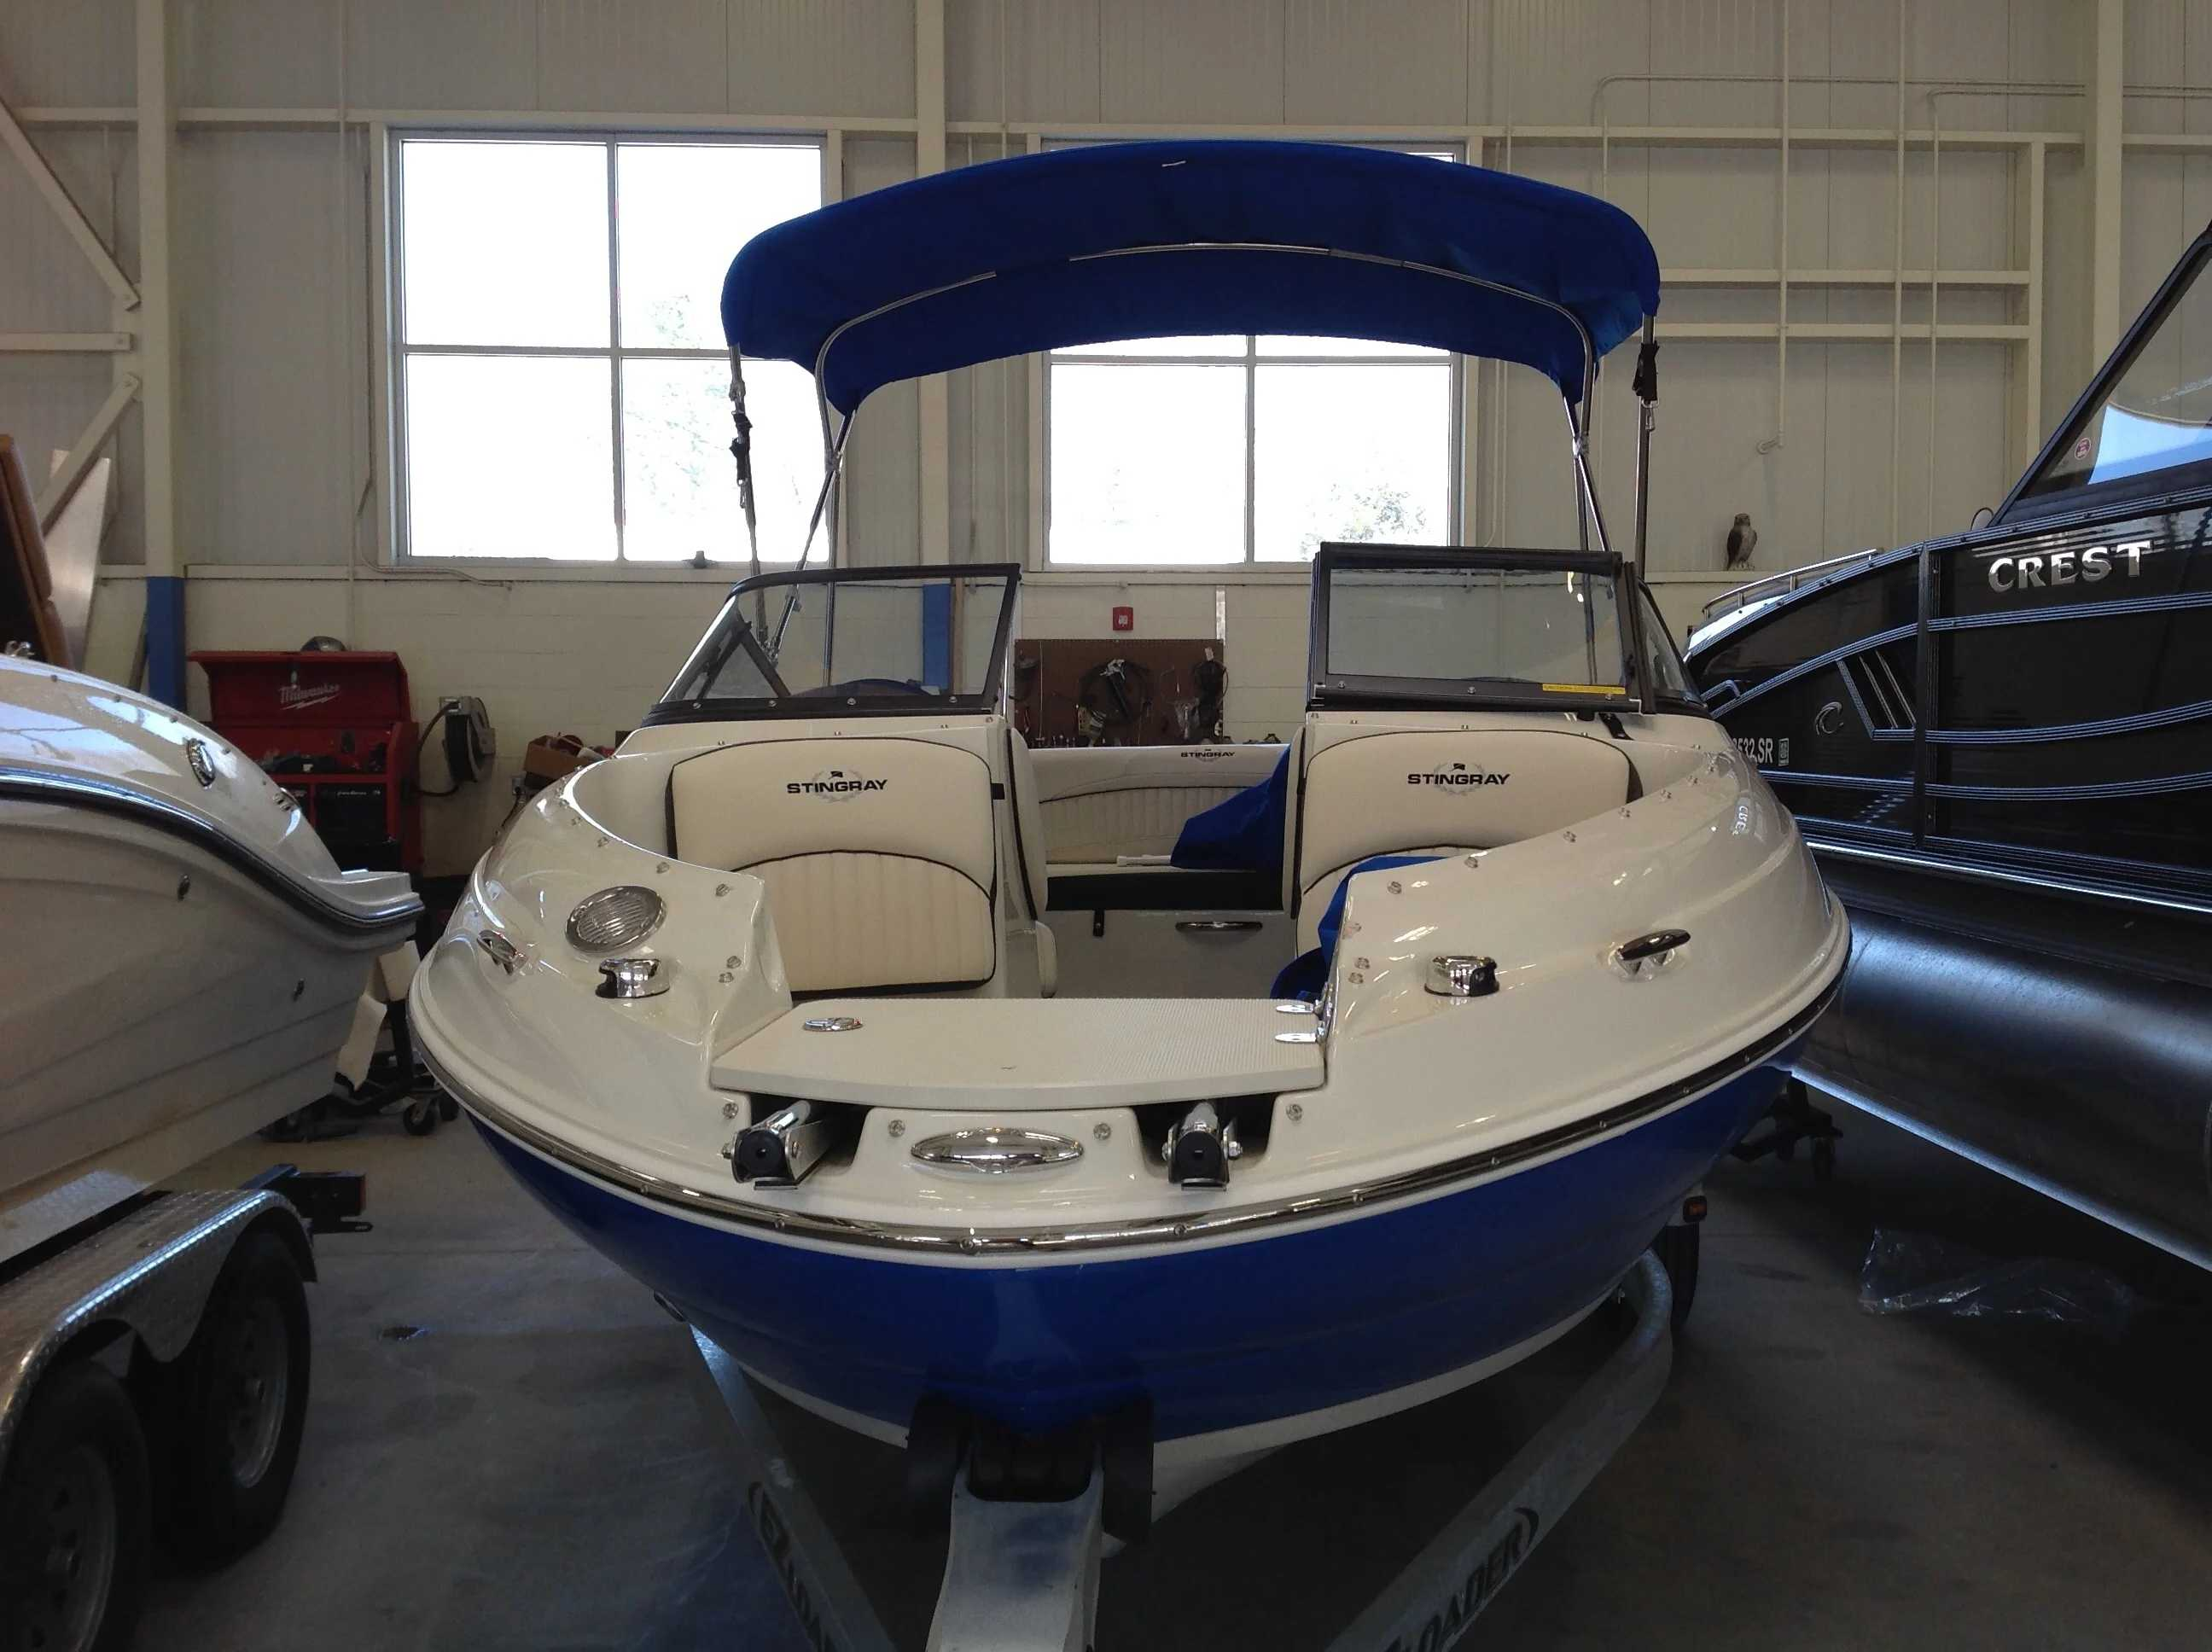 2021 Stingray boat for sale, model of the boat is 198lx & Image # 3 of 14